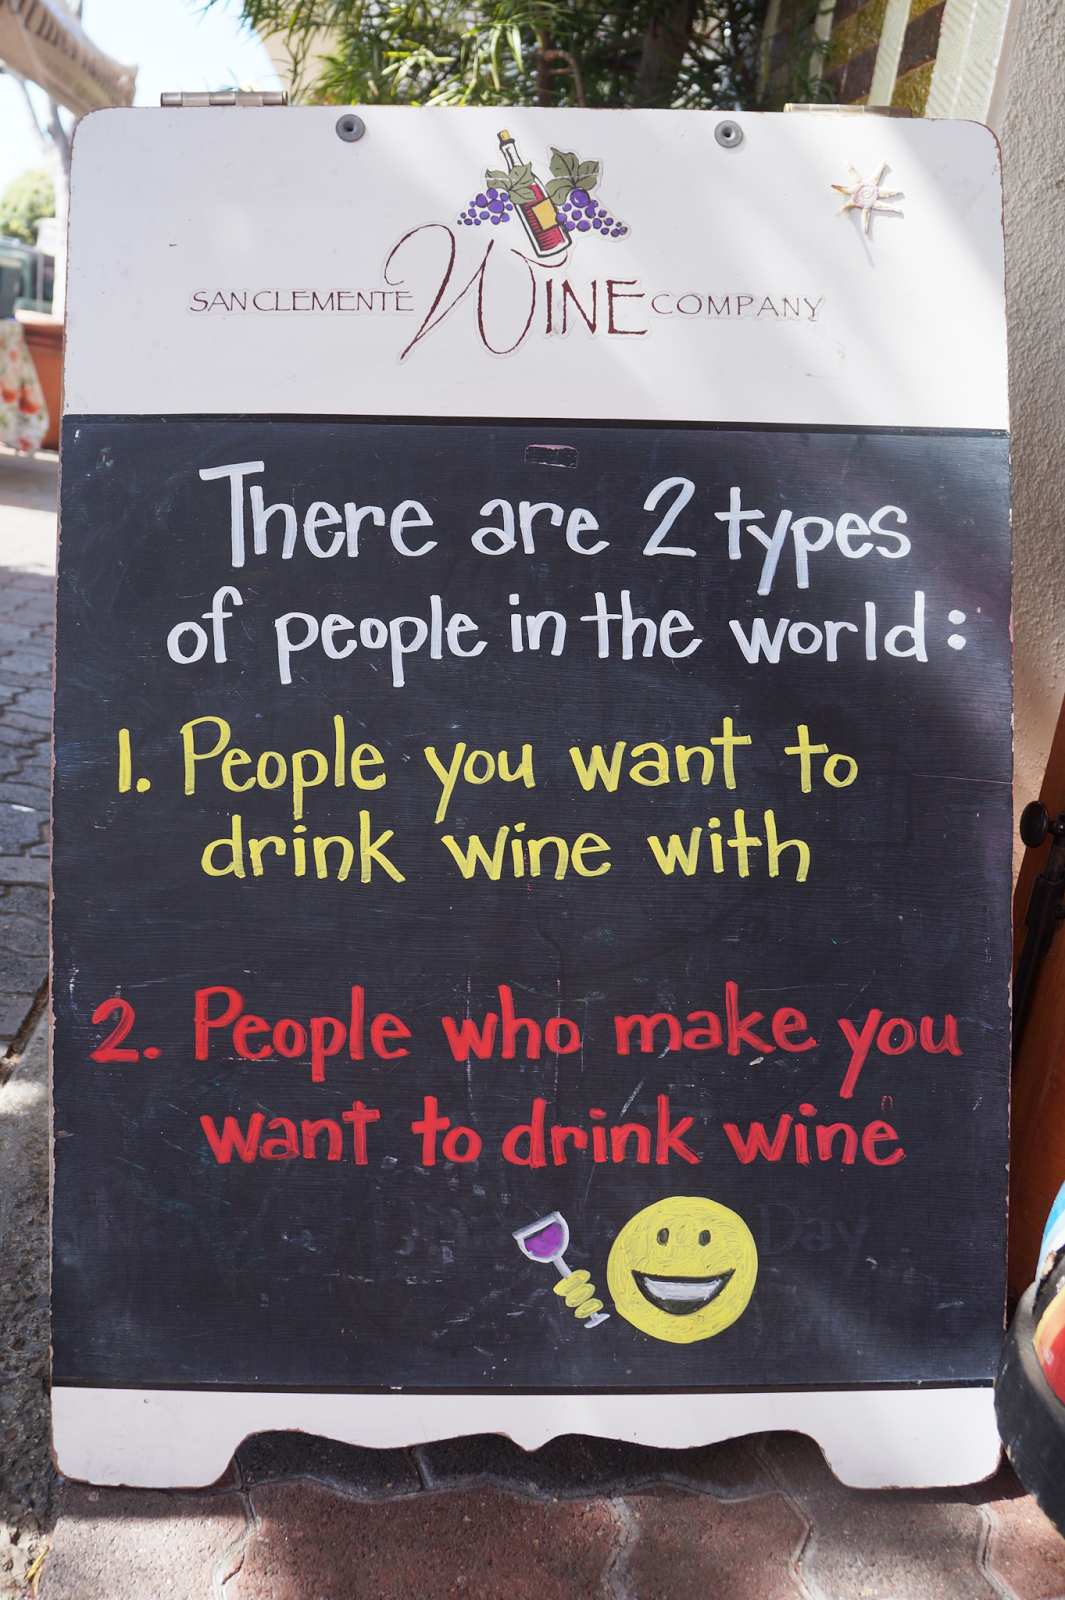 san clemente wine company Things To Do in San Clemente, California